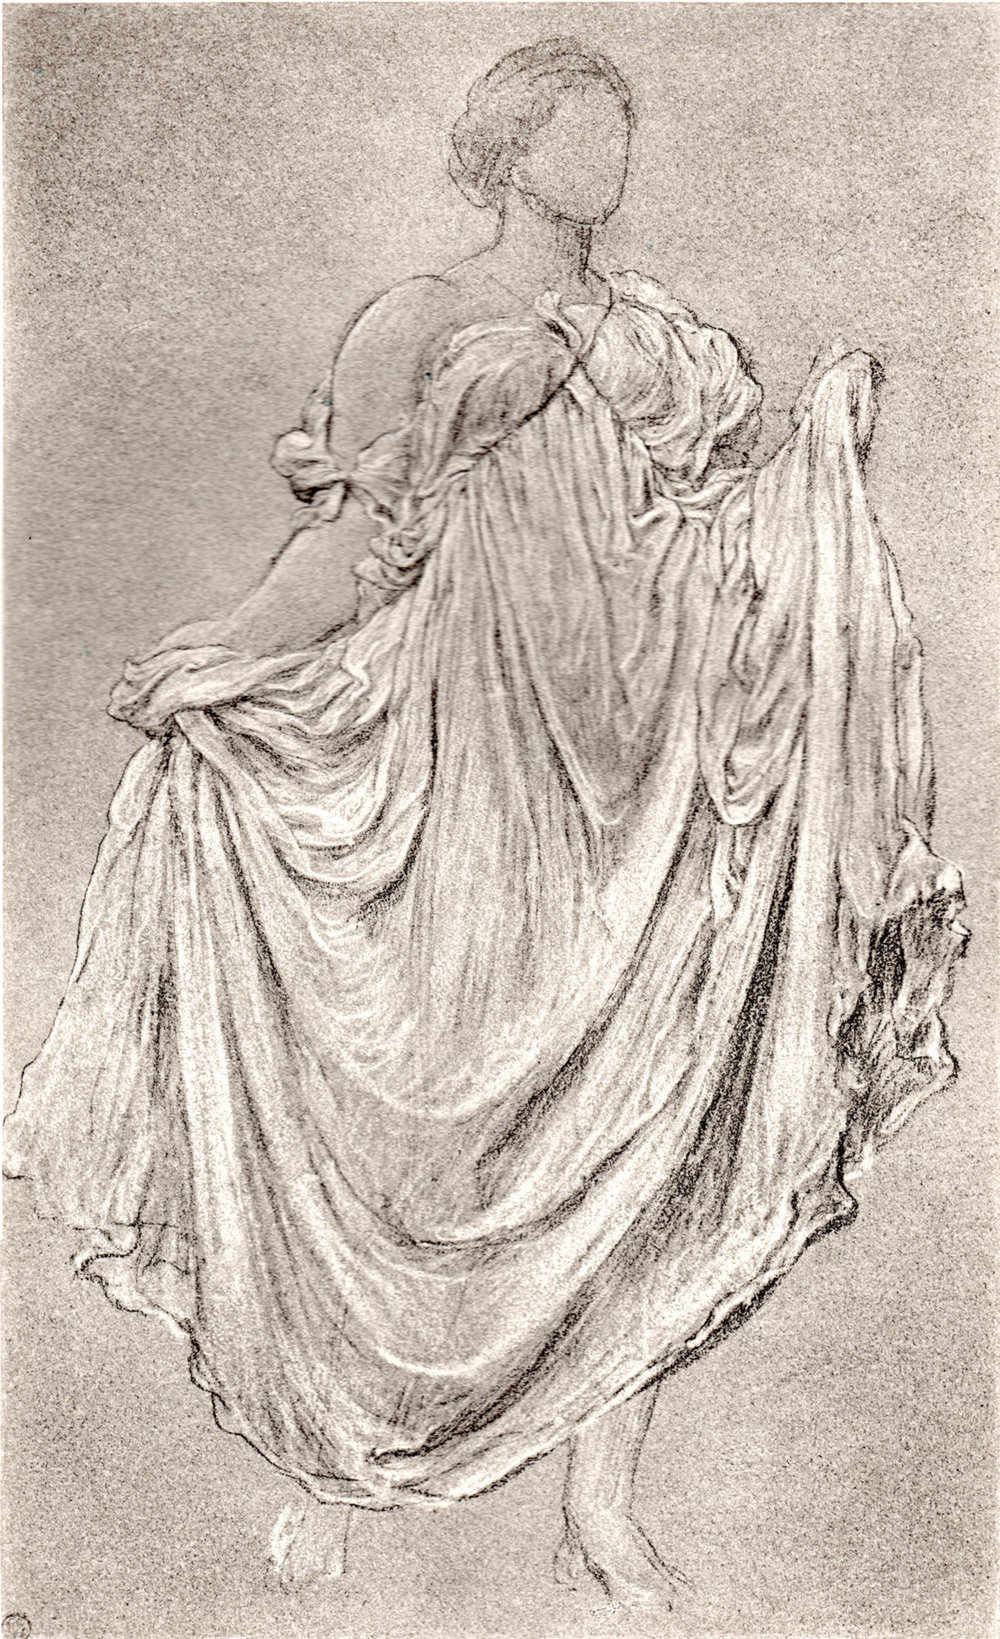 Drawings & Studies in Pencil, Chalk, & Other Mediums by the Late Lord Leighton of Stretton, P.R.A. (1898, limited edition of 500)